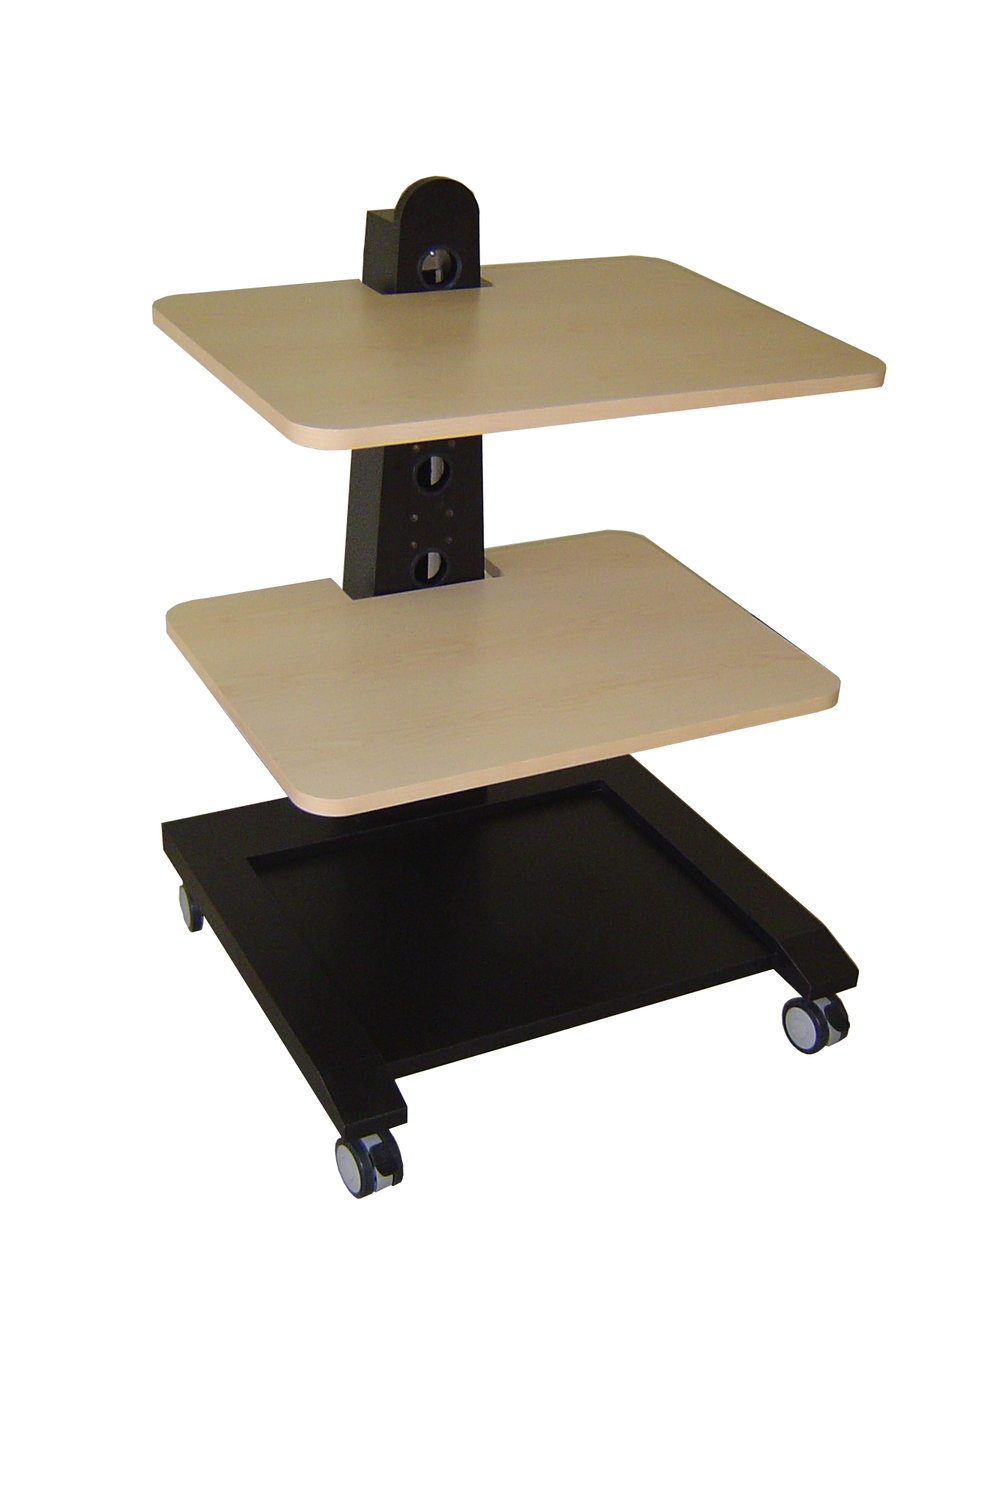 Document camera cart